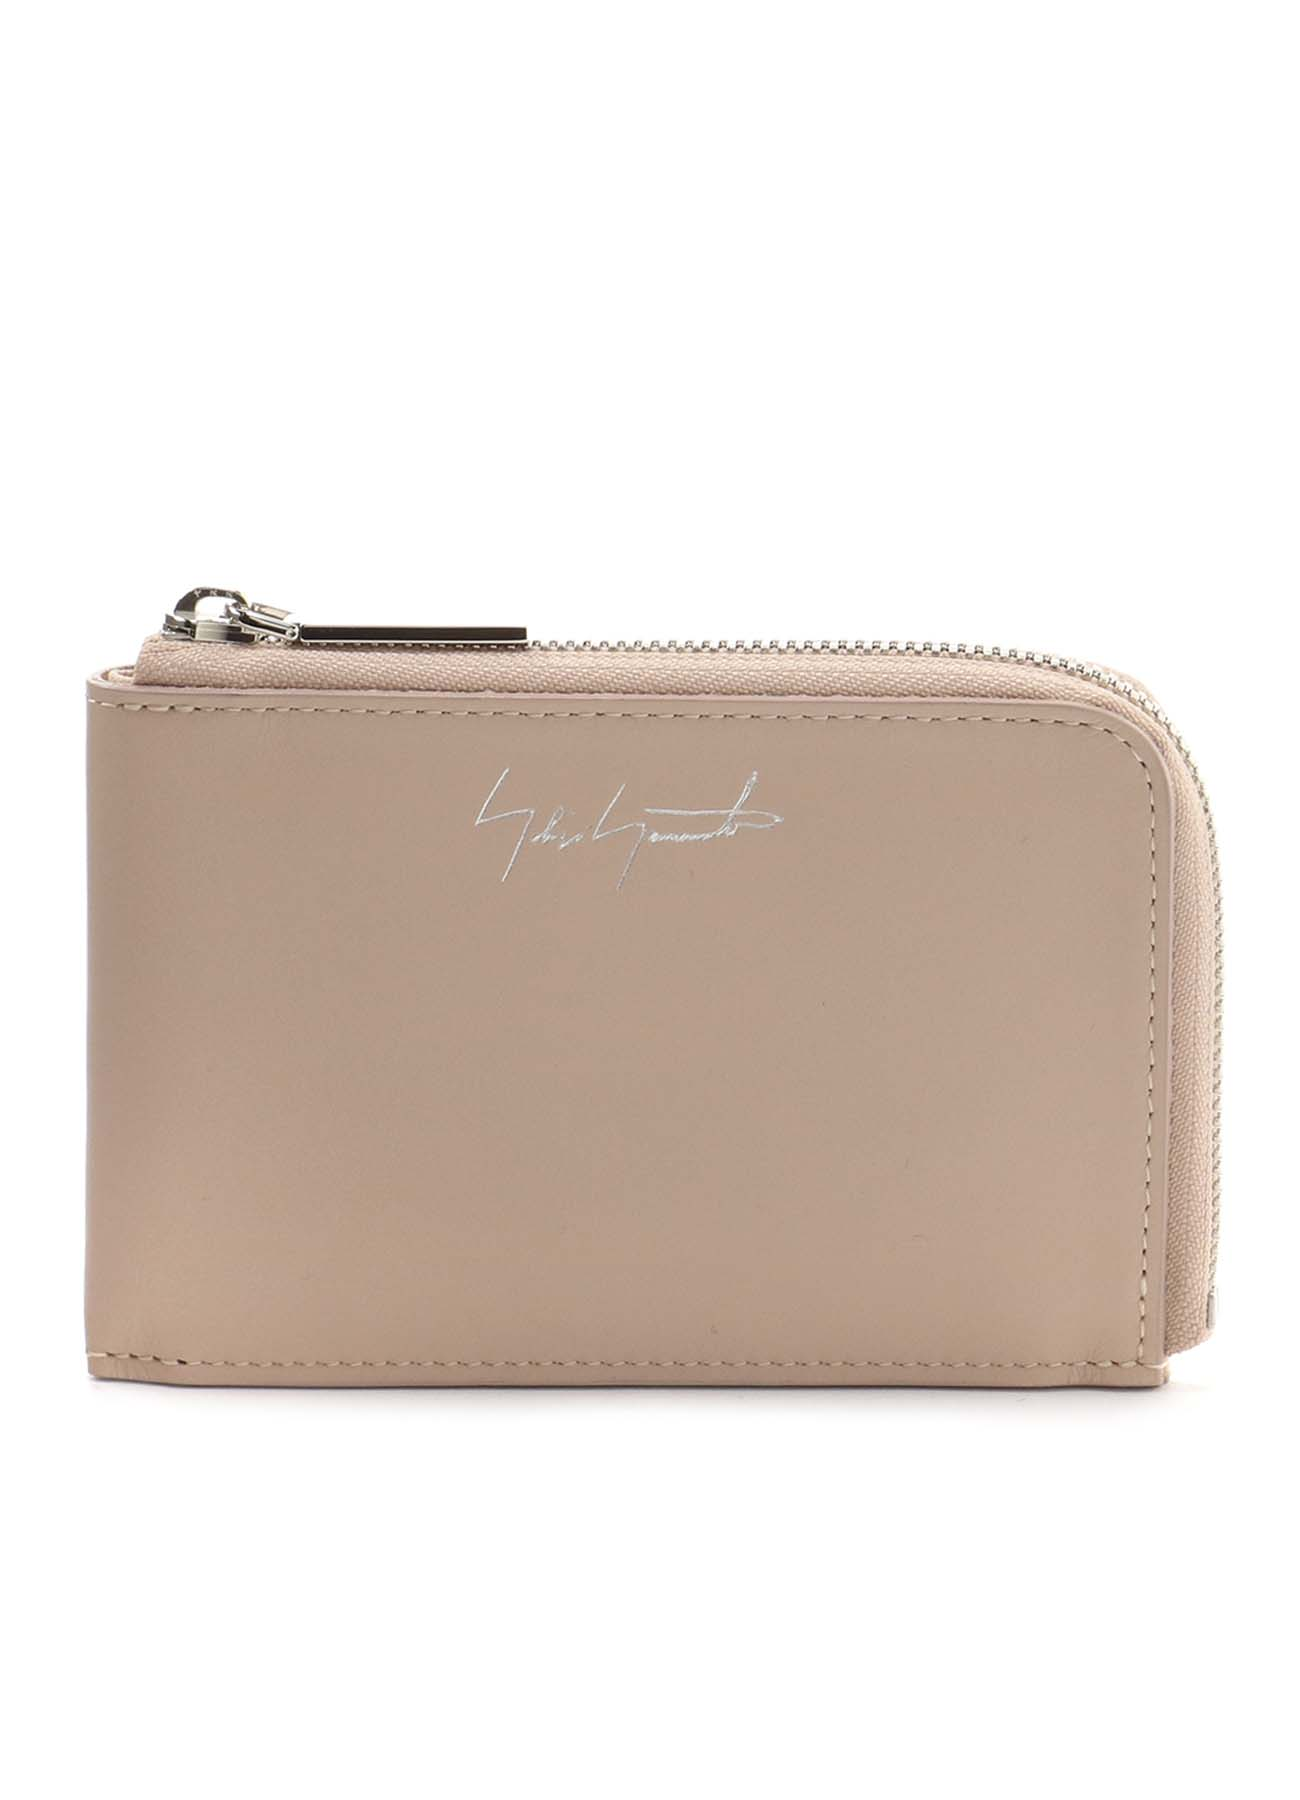 Plain(short wallet)